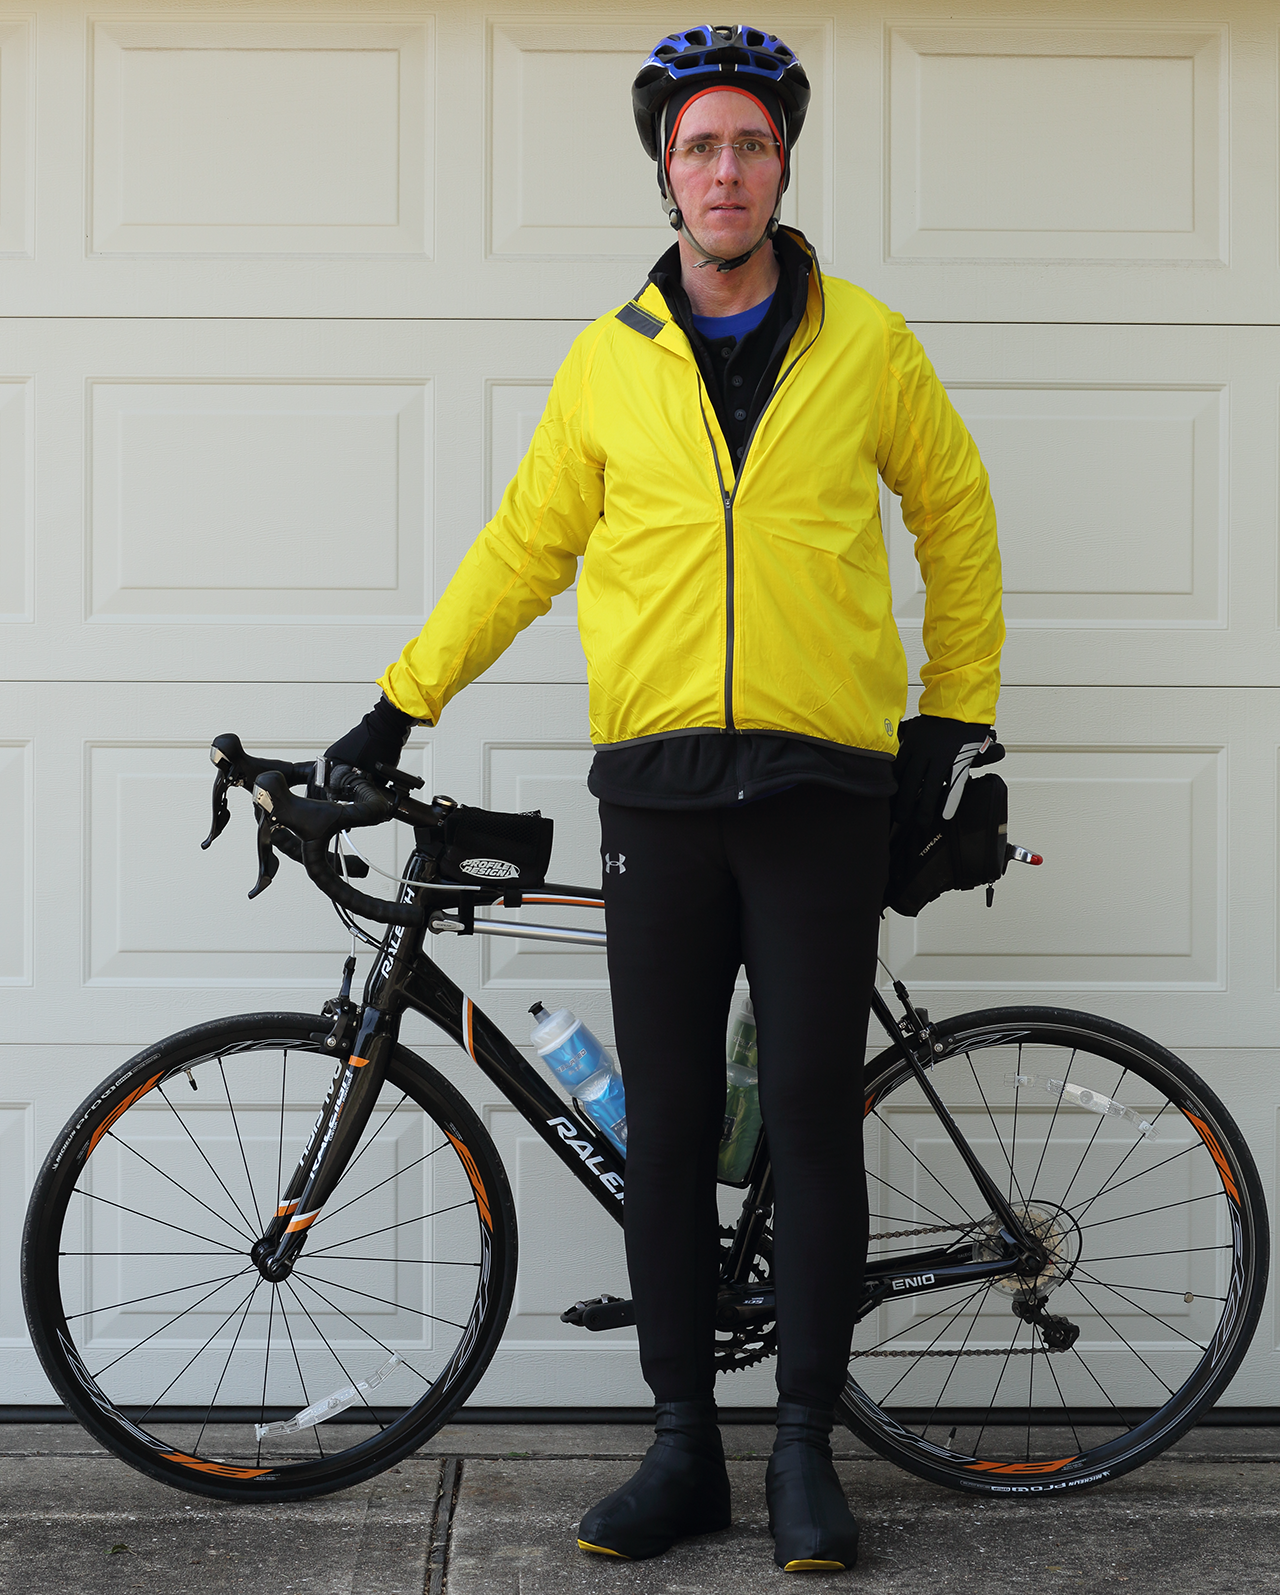 Cold weather biking gear